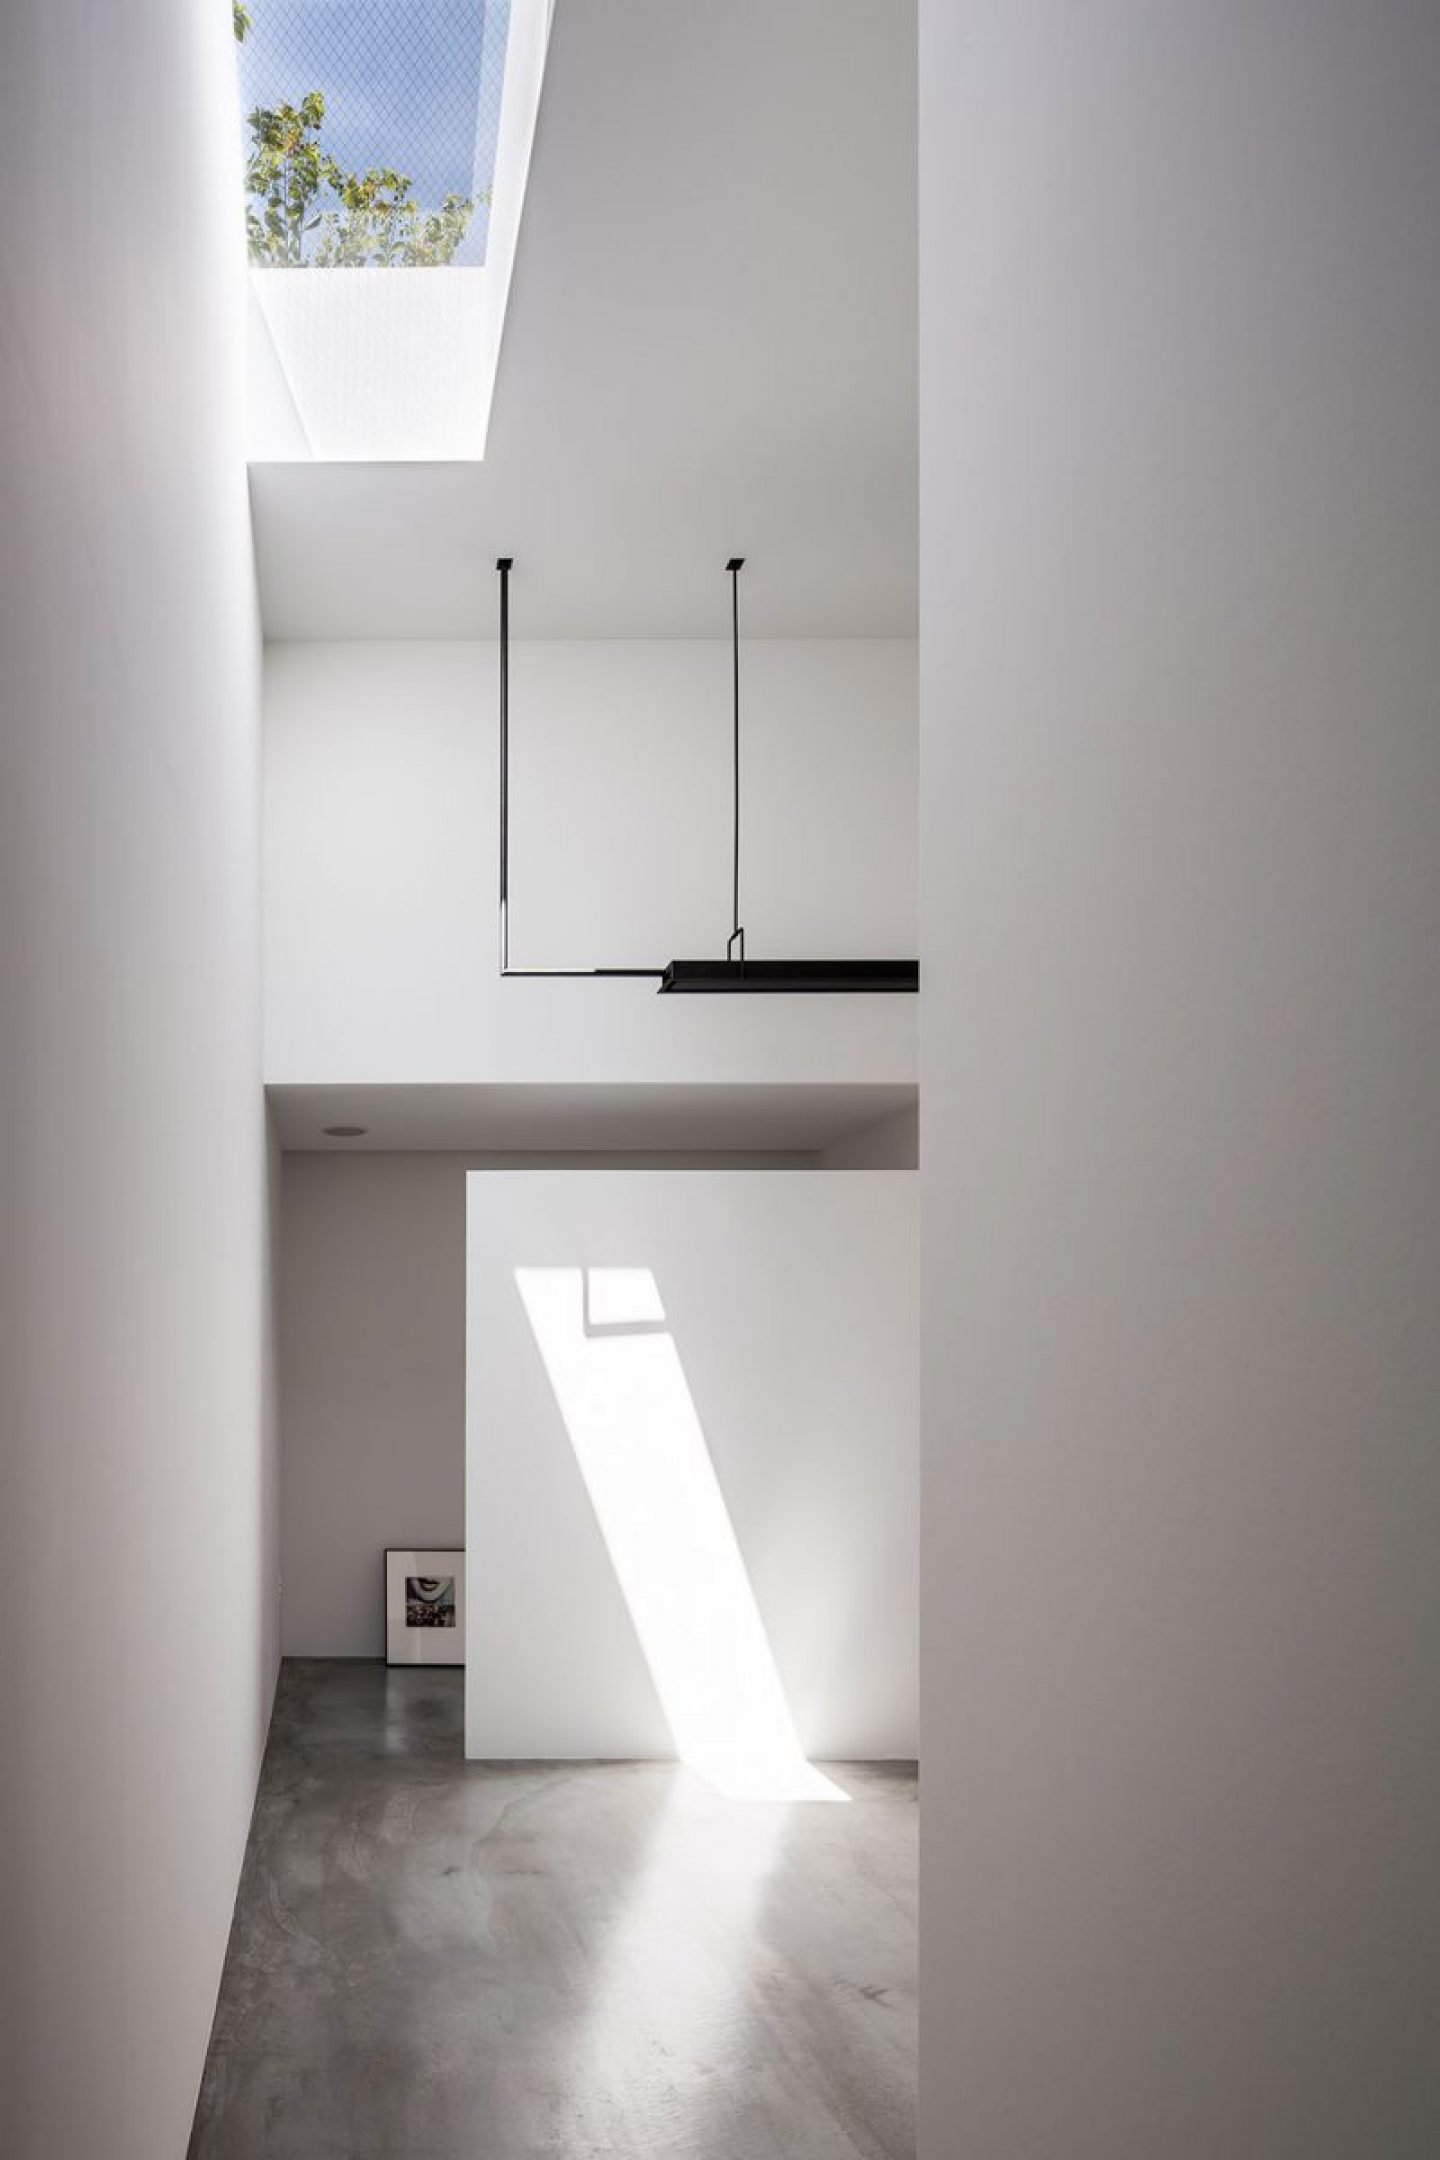 iGNANT_Architecture_House_For_A_Photographer_FORM_Kouichi_Kimura_Architects_14